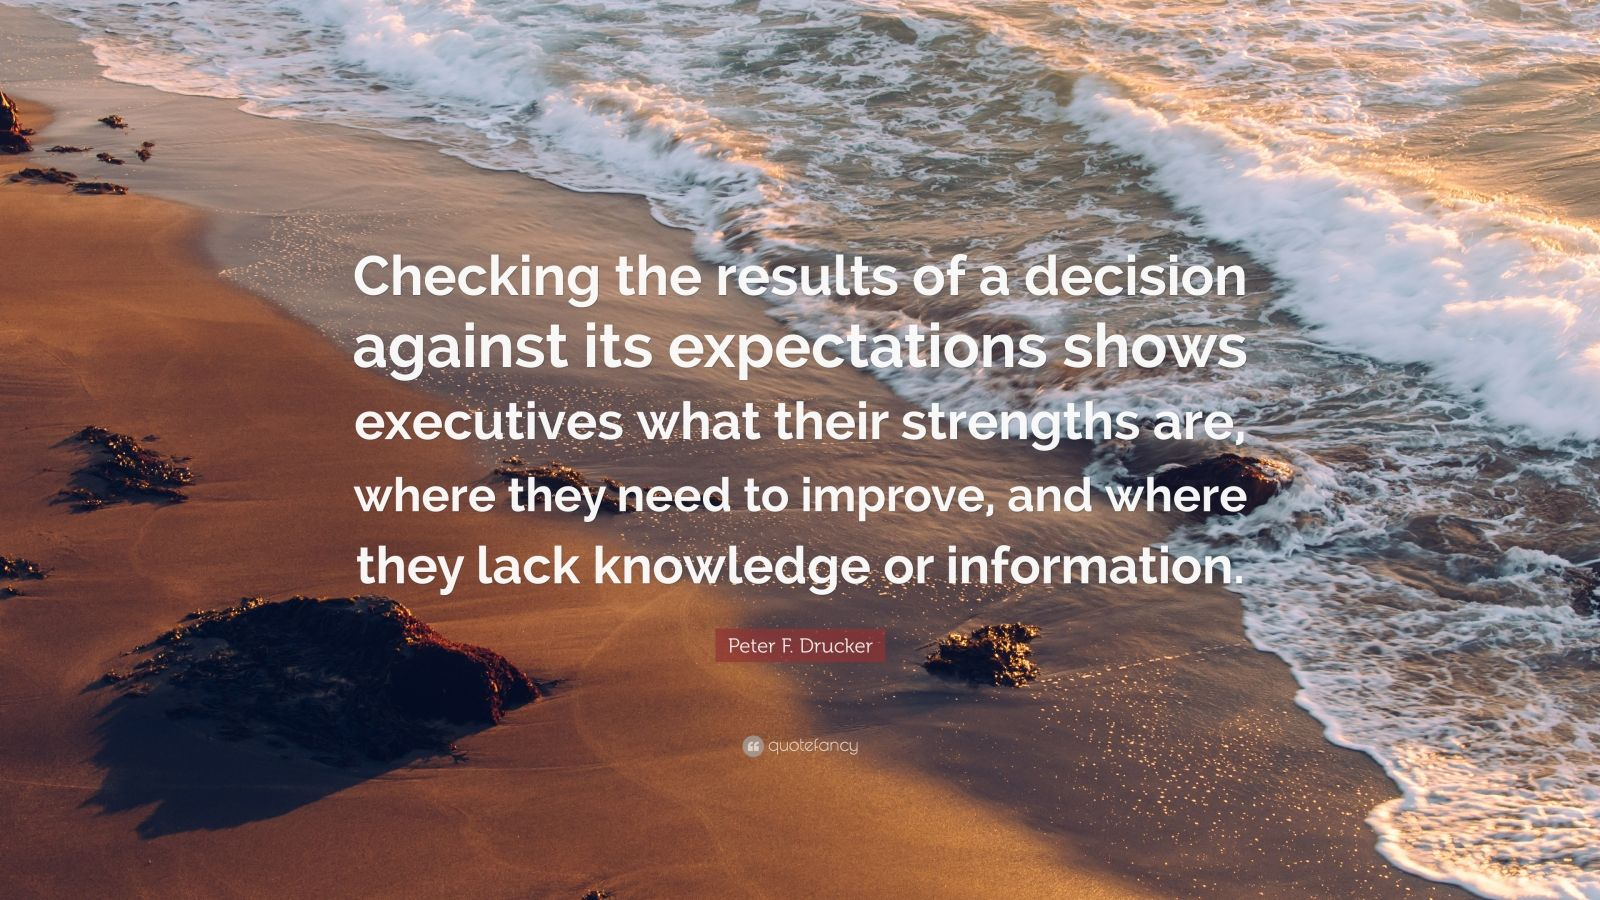 """Peter F. Drucker Quote: """"Checking the results of a decision against its expectations shows executives what their strengths are, where they need to improve, and where they lack knowledge or information."""""""